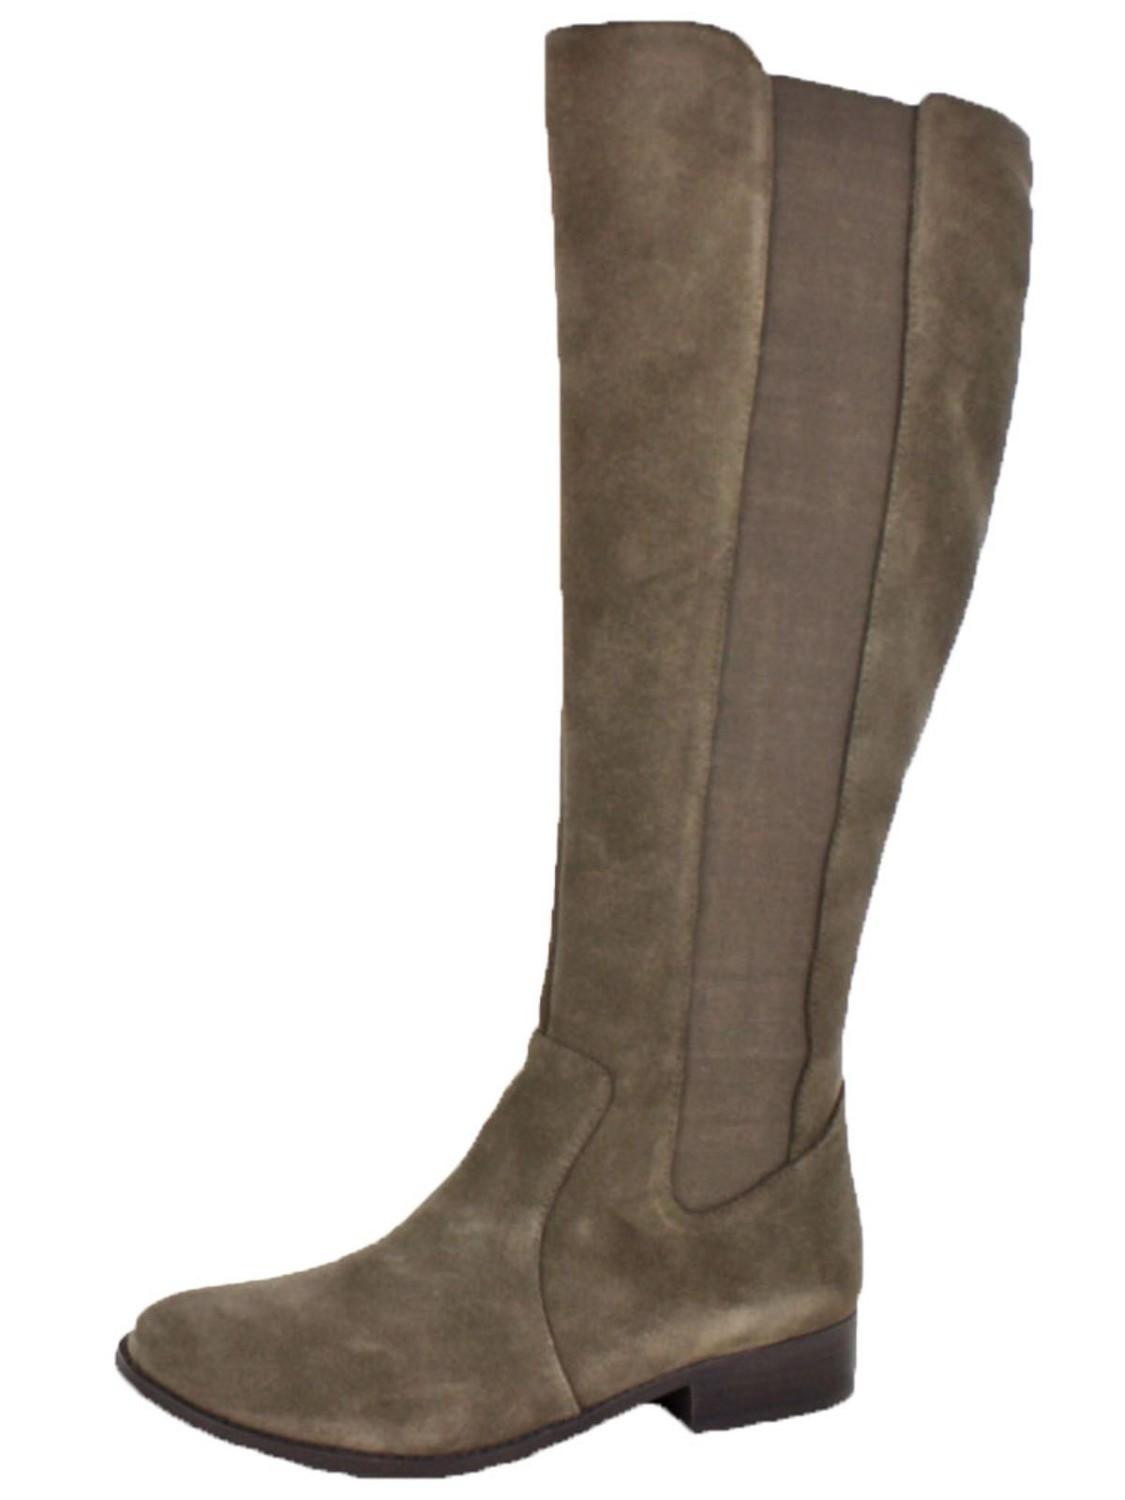 df923a5b1a4 Lyst - Jessica Simpson Ricel 2 Riding Knee High Leather Boots in ...